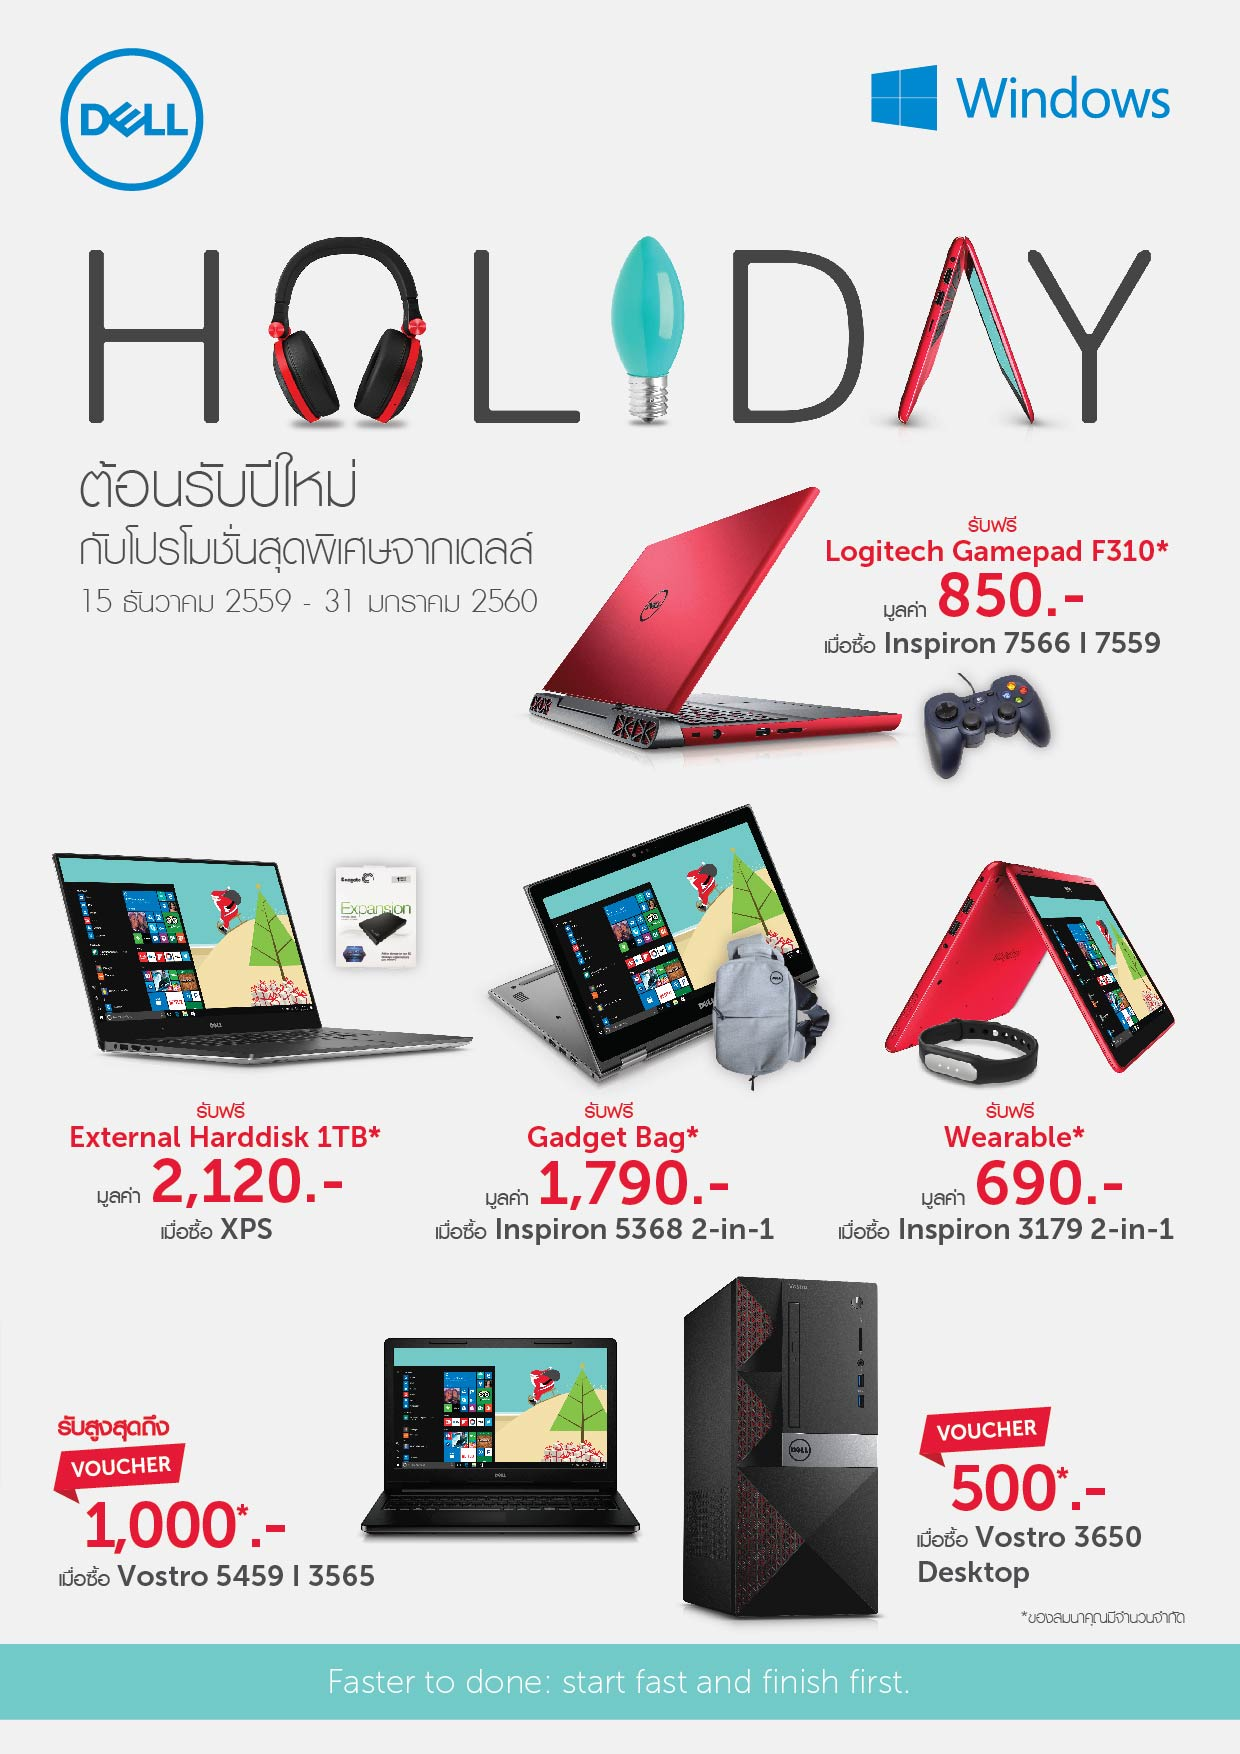 dell-holiday-promotion-01